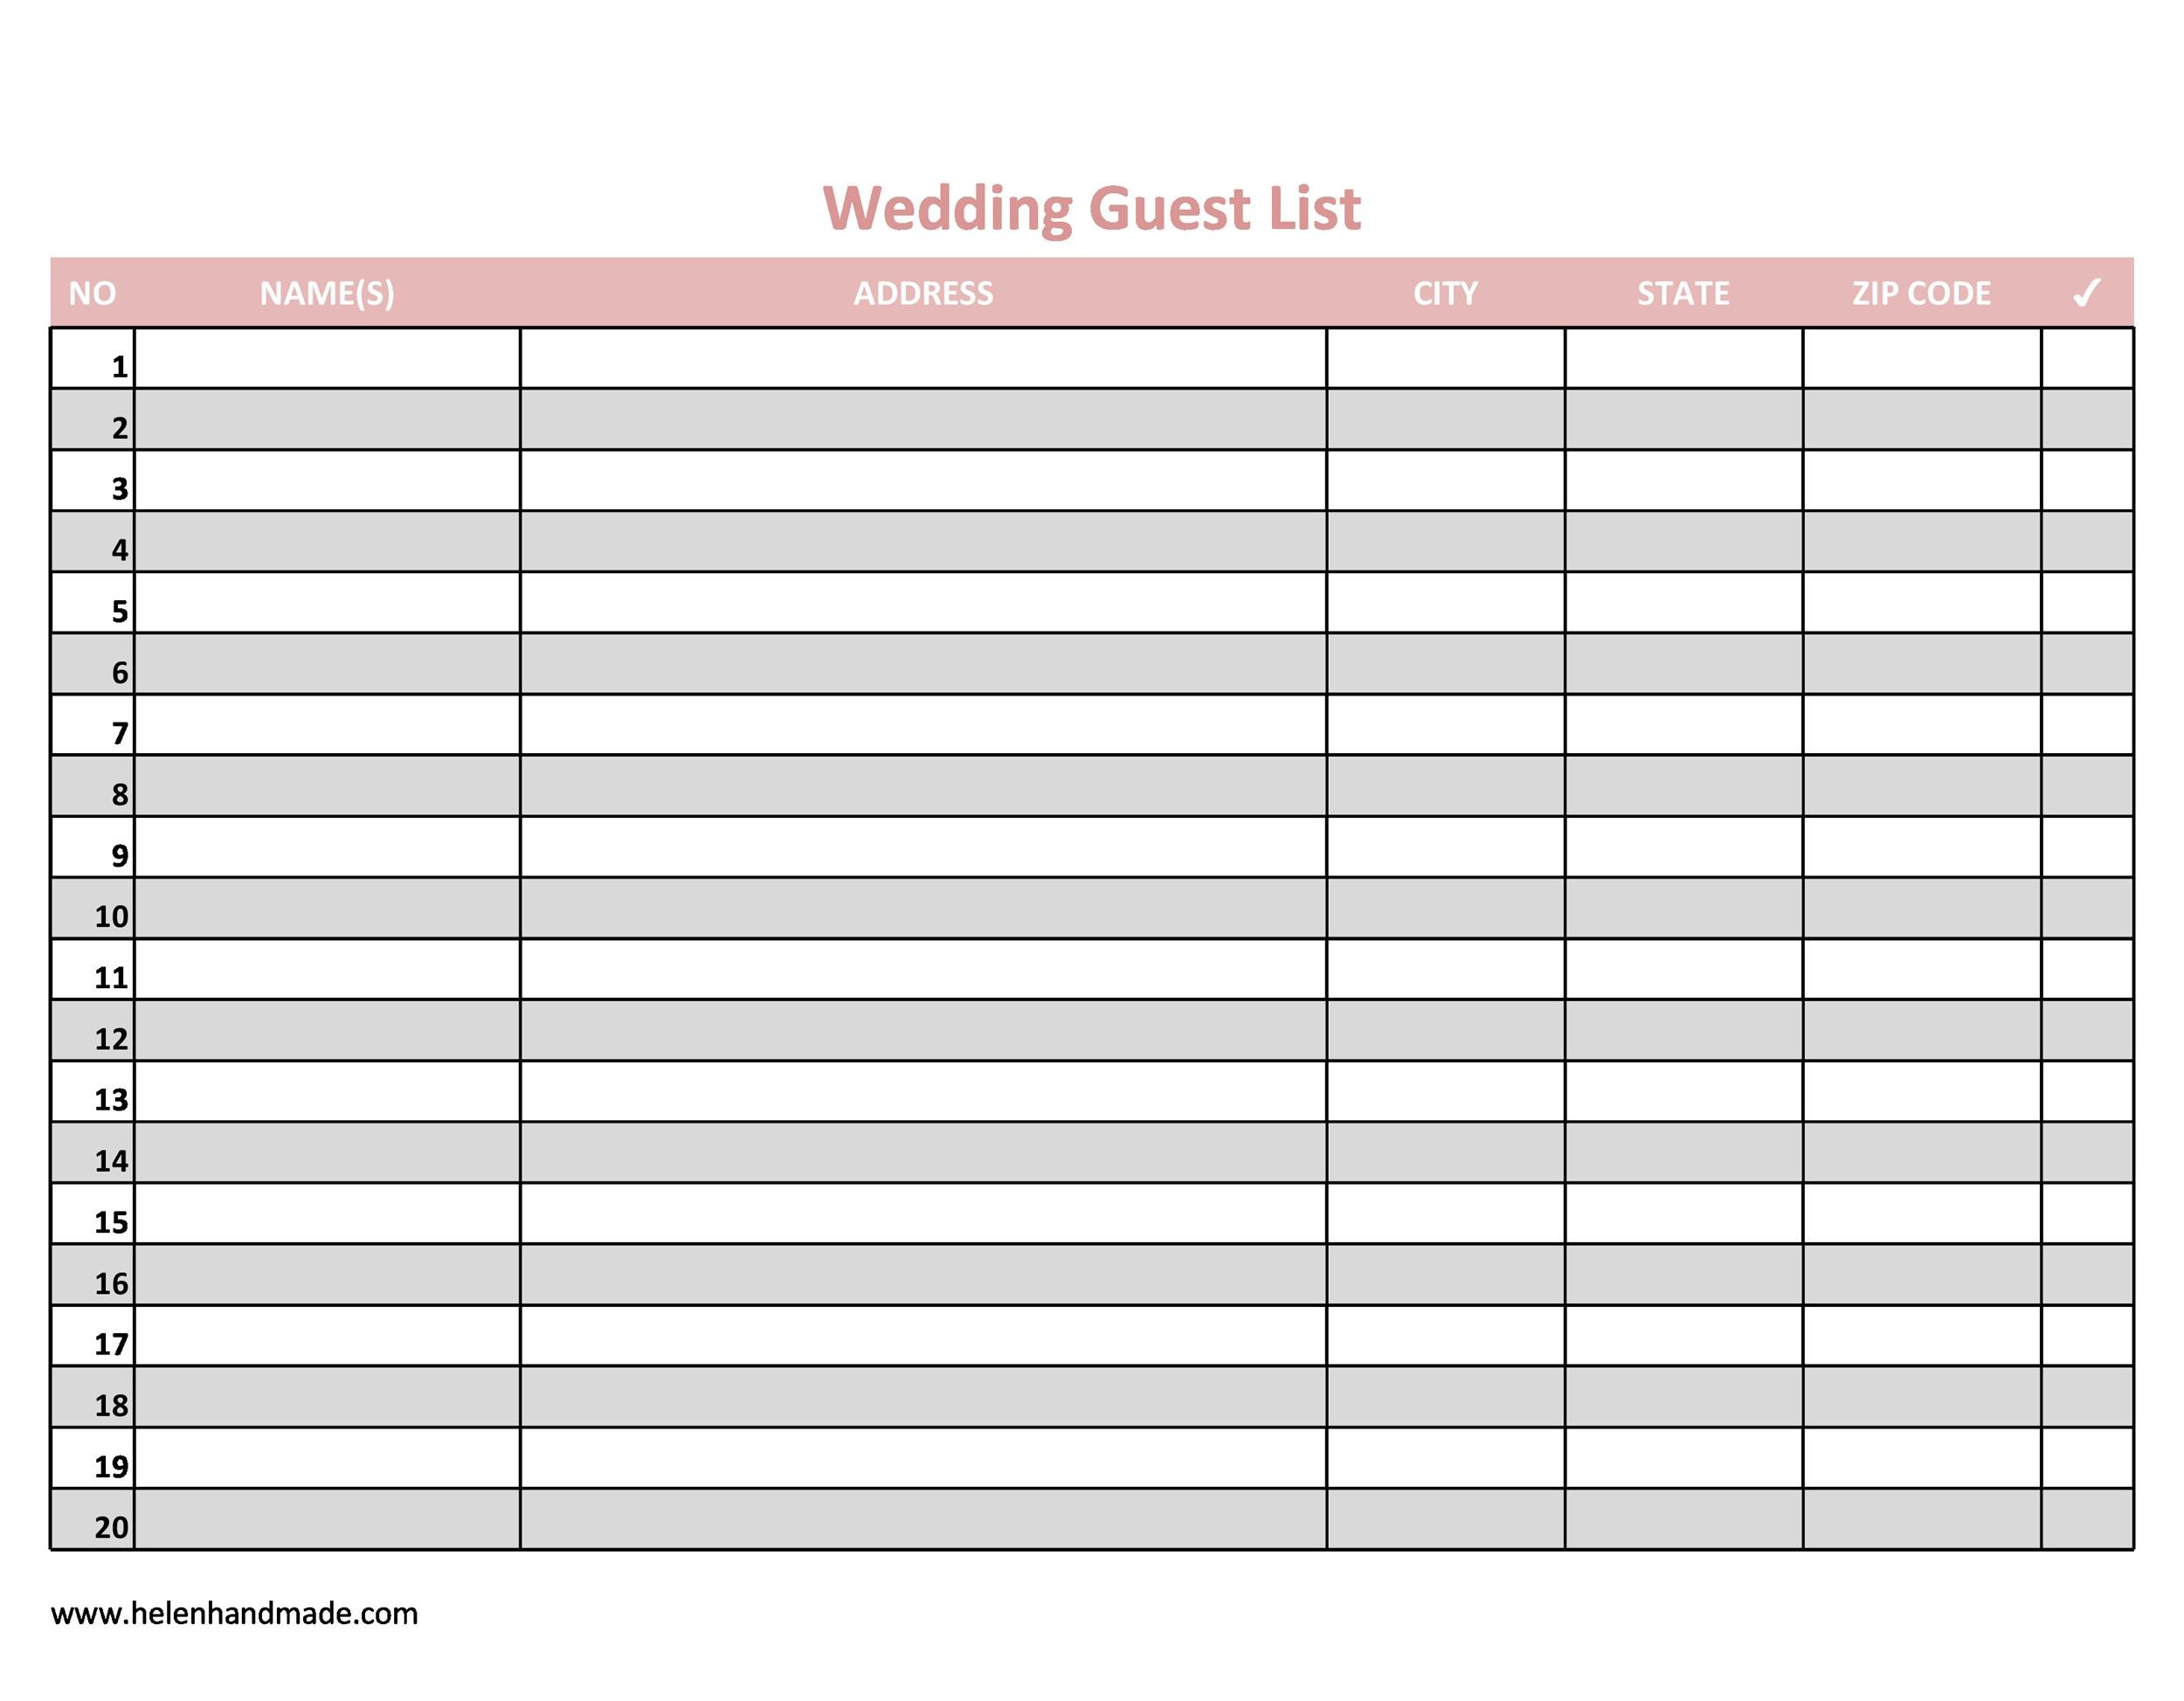 Wedding Guest List Template Printable Guest List Rsvp Organizer – Free Wedding Guest List Template